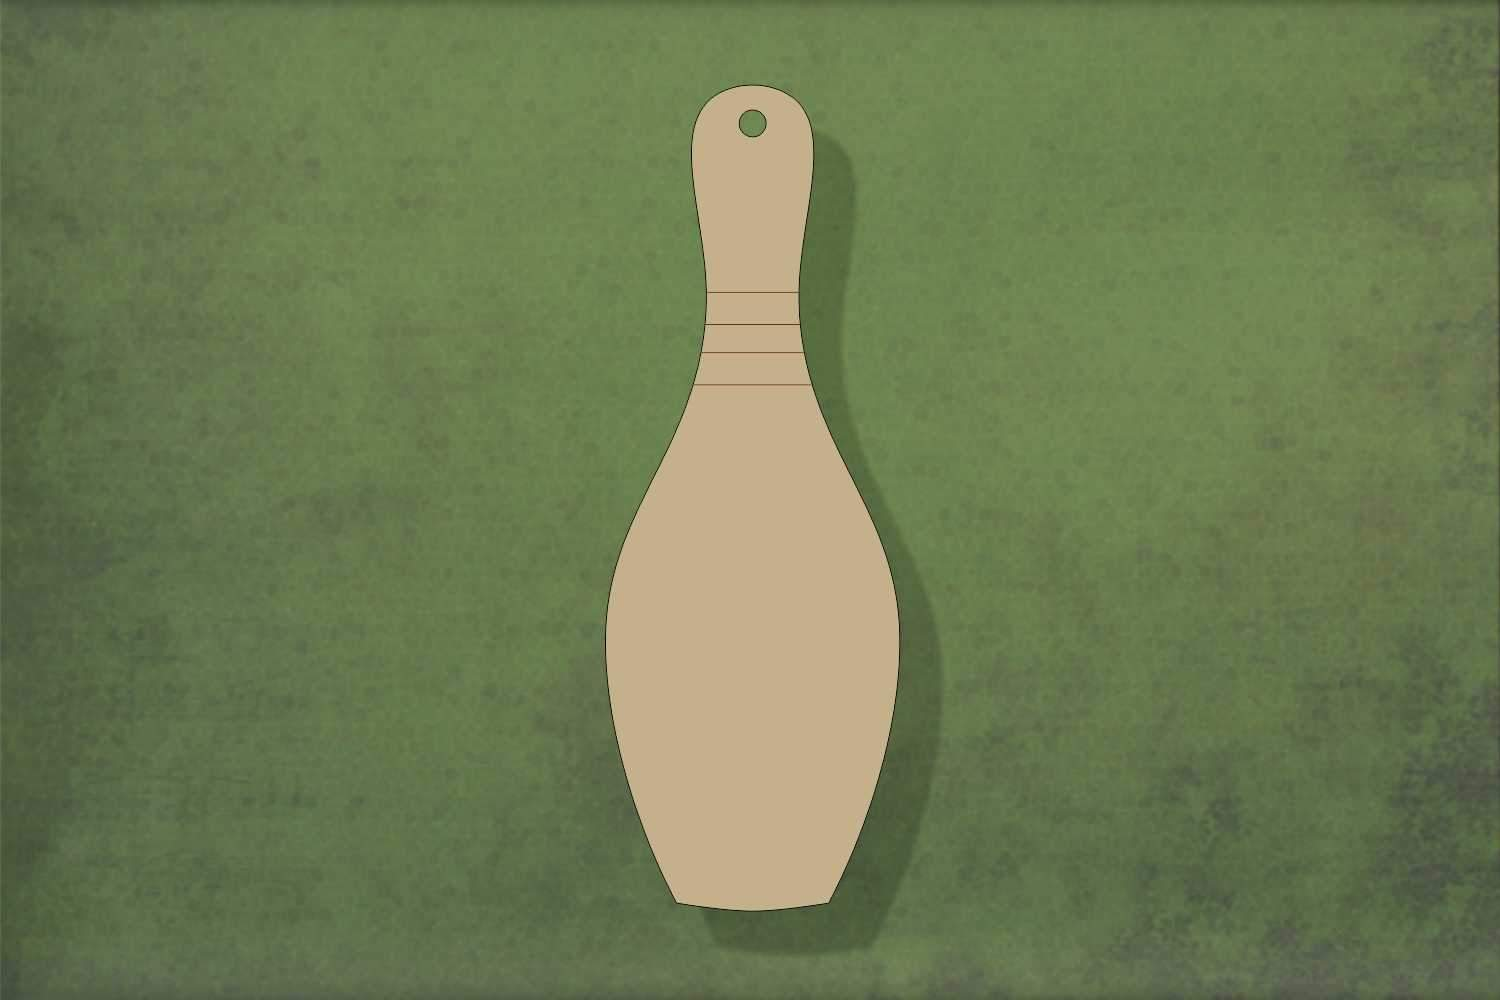 Laser cut, blank wooden Bowling pin shape for craft